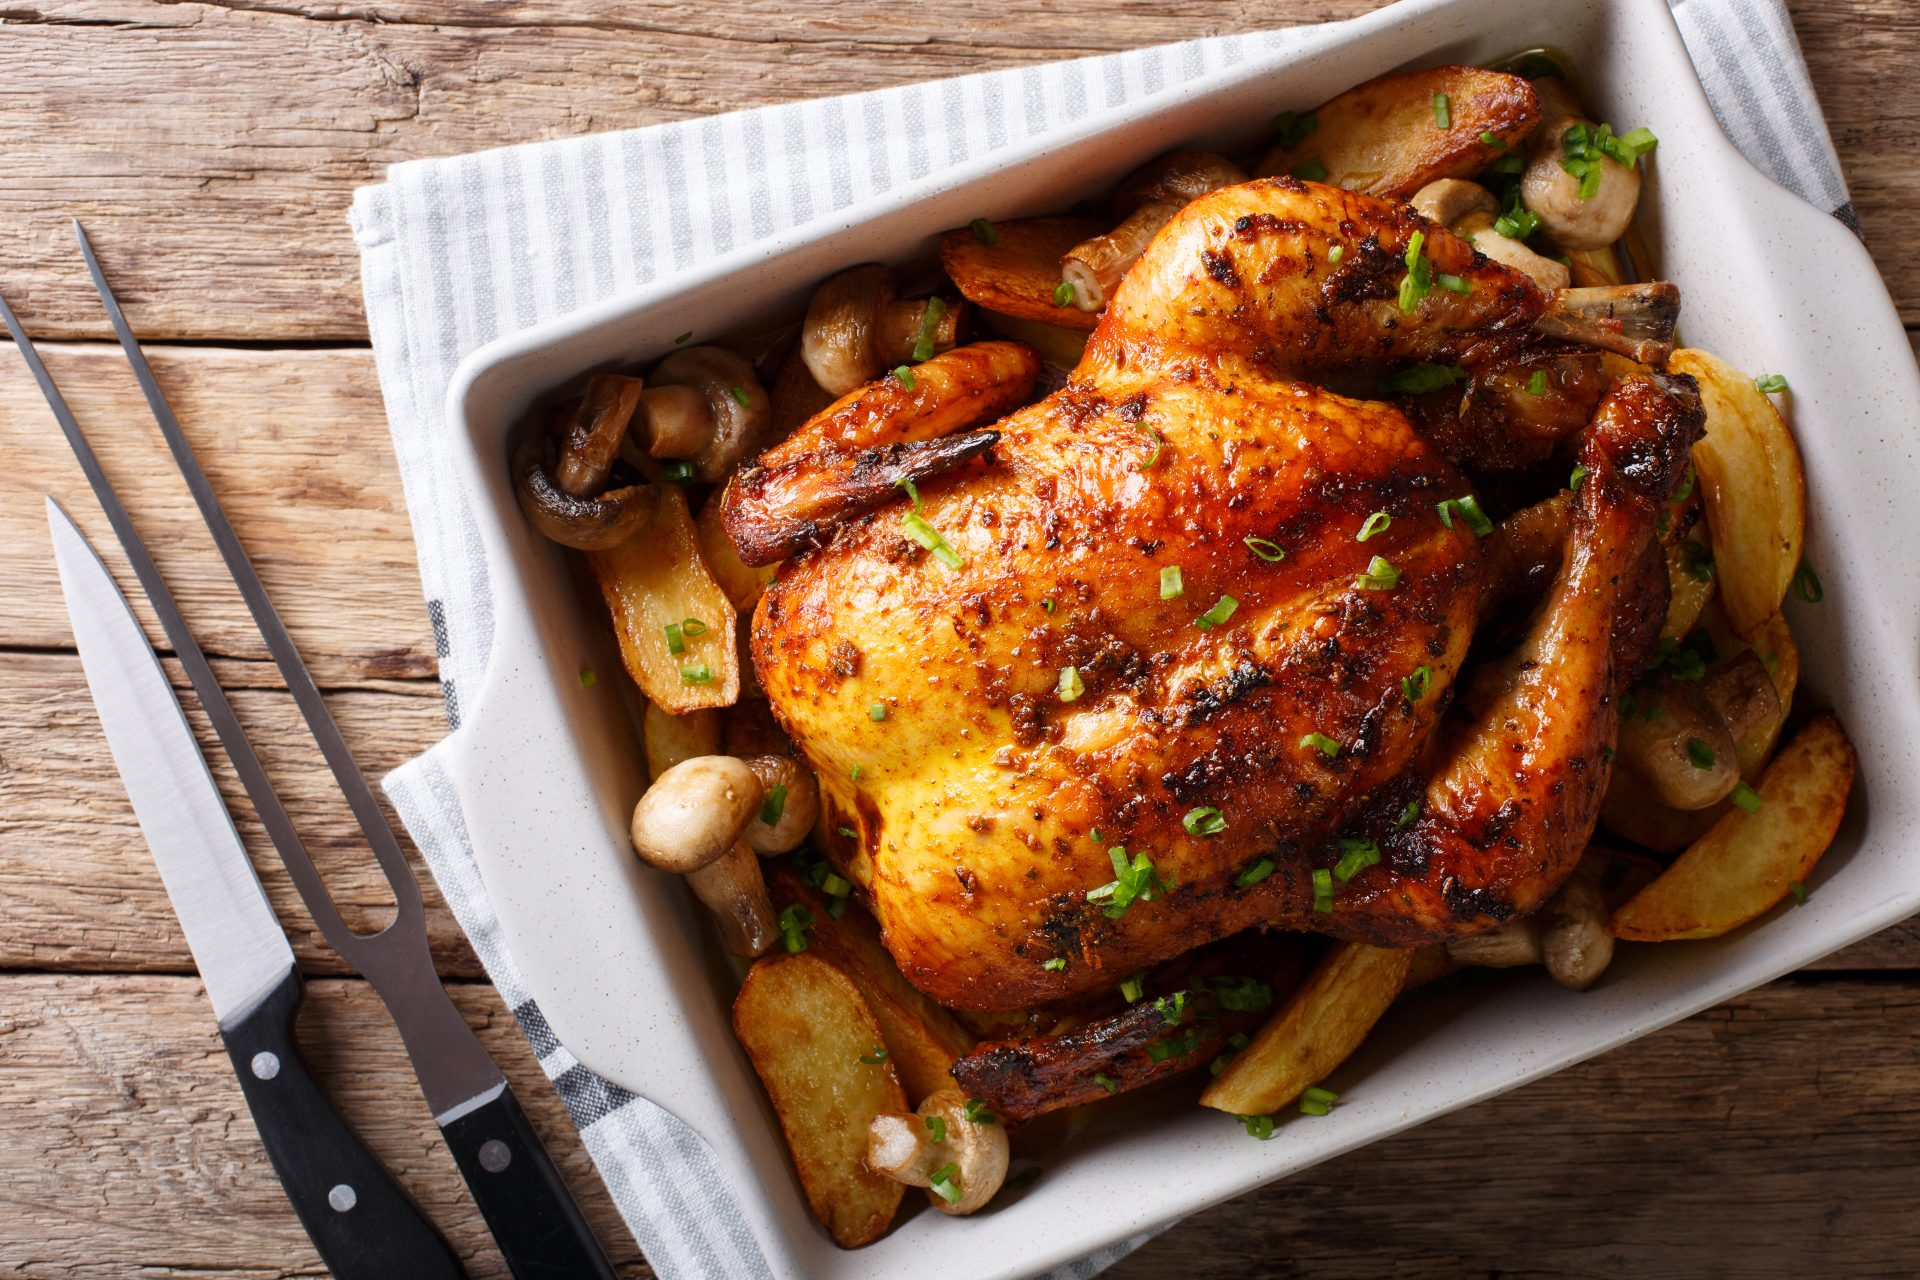 Roast Chicken cooked safely